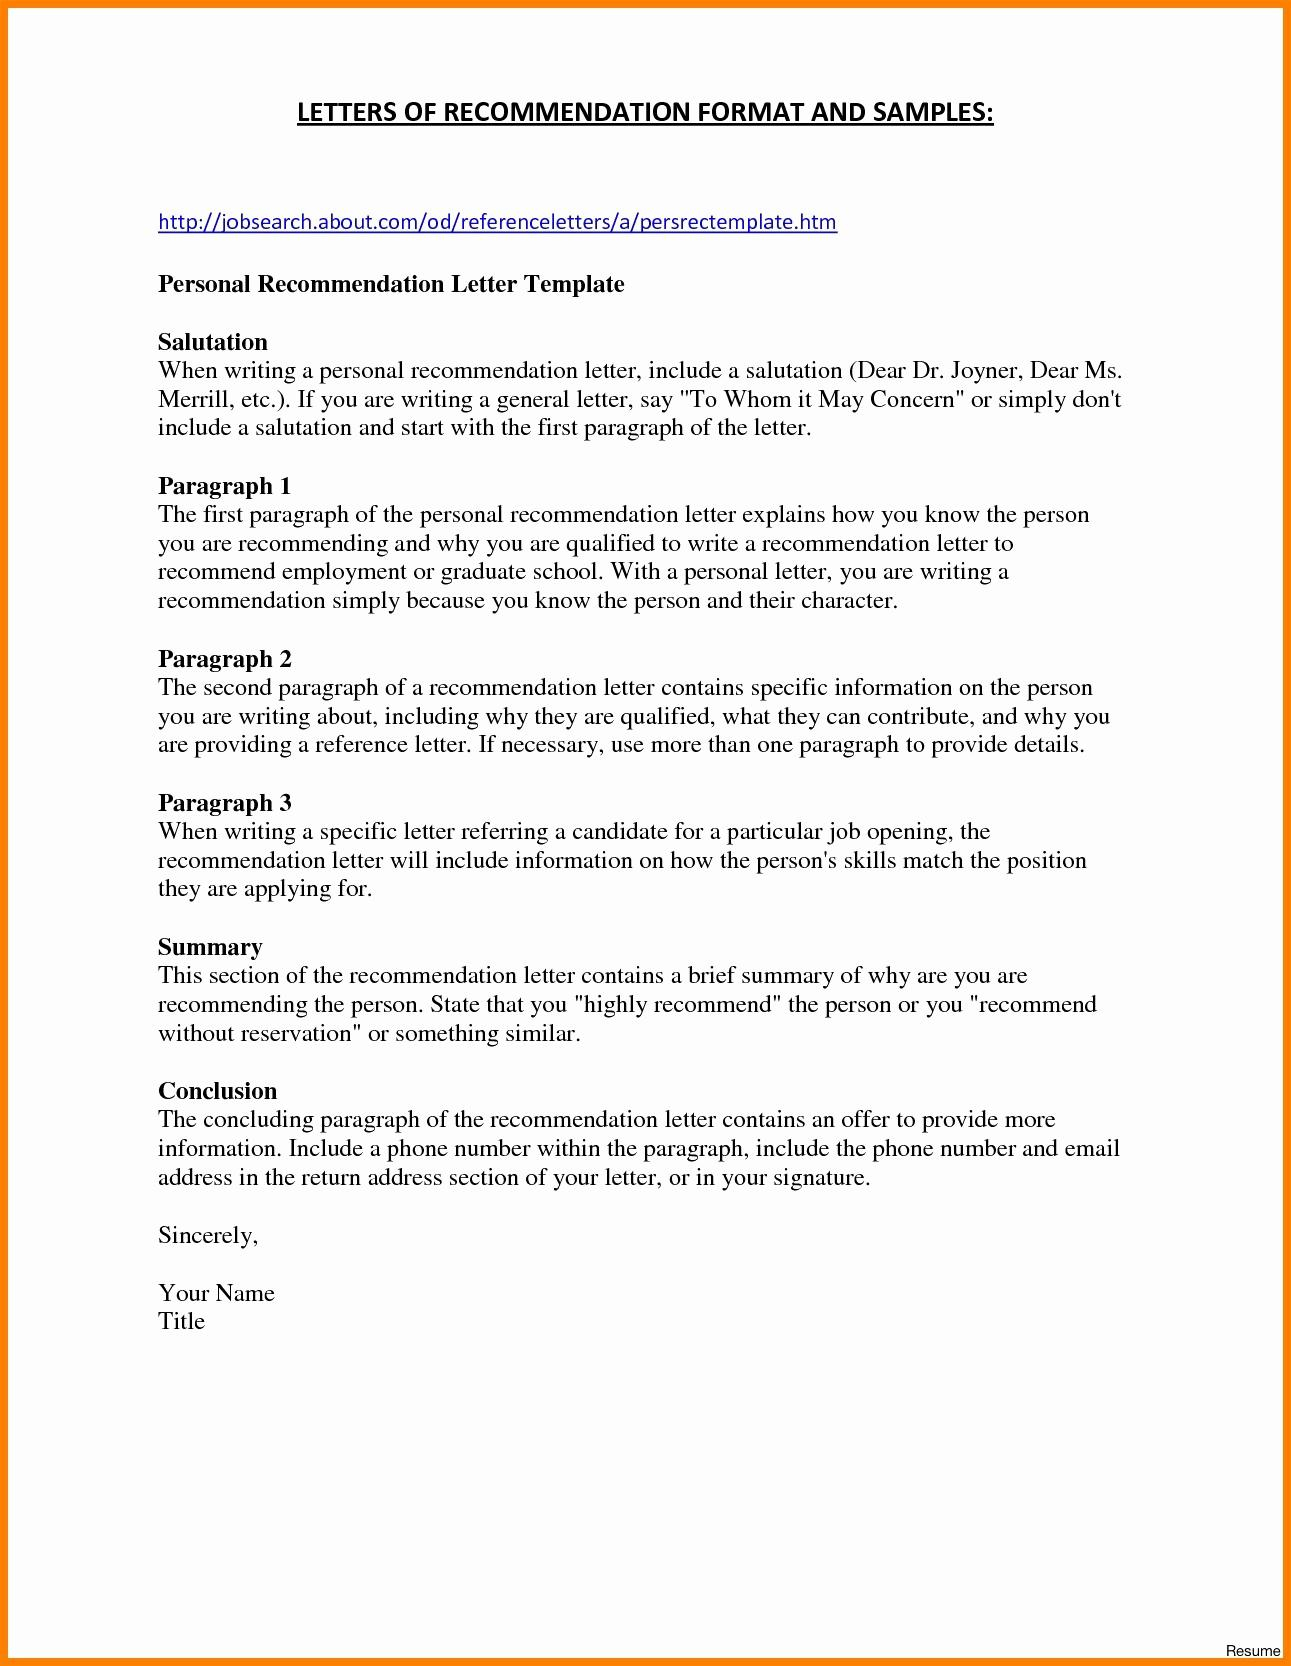 Personal Reference Letter Template Free - Resume Templates Poppycockreviews